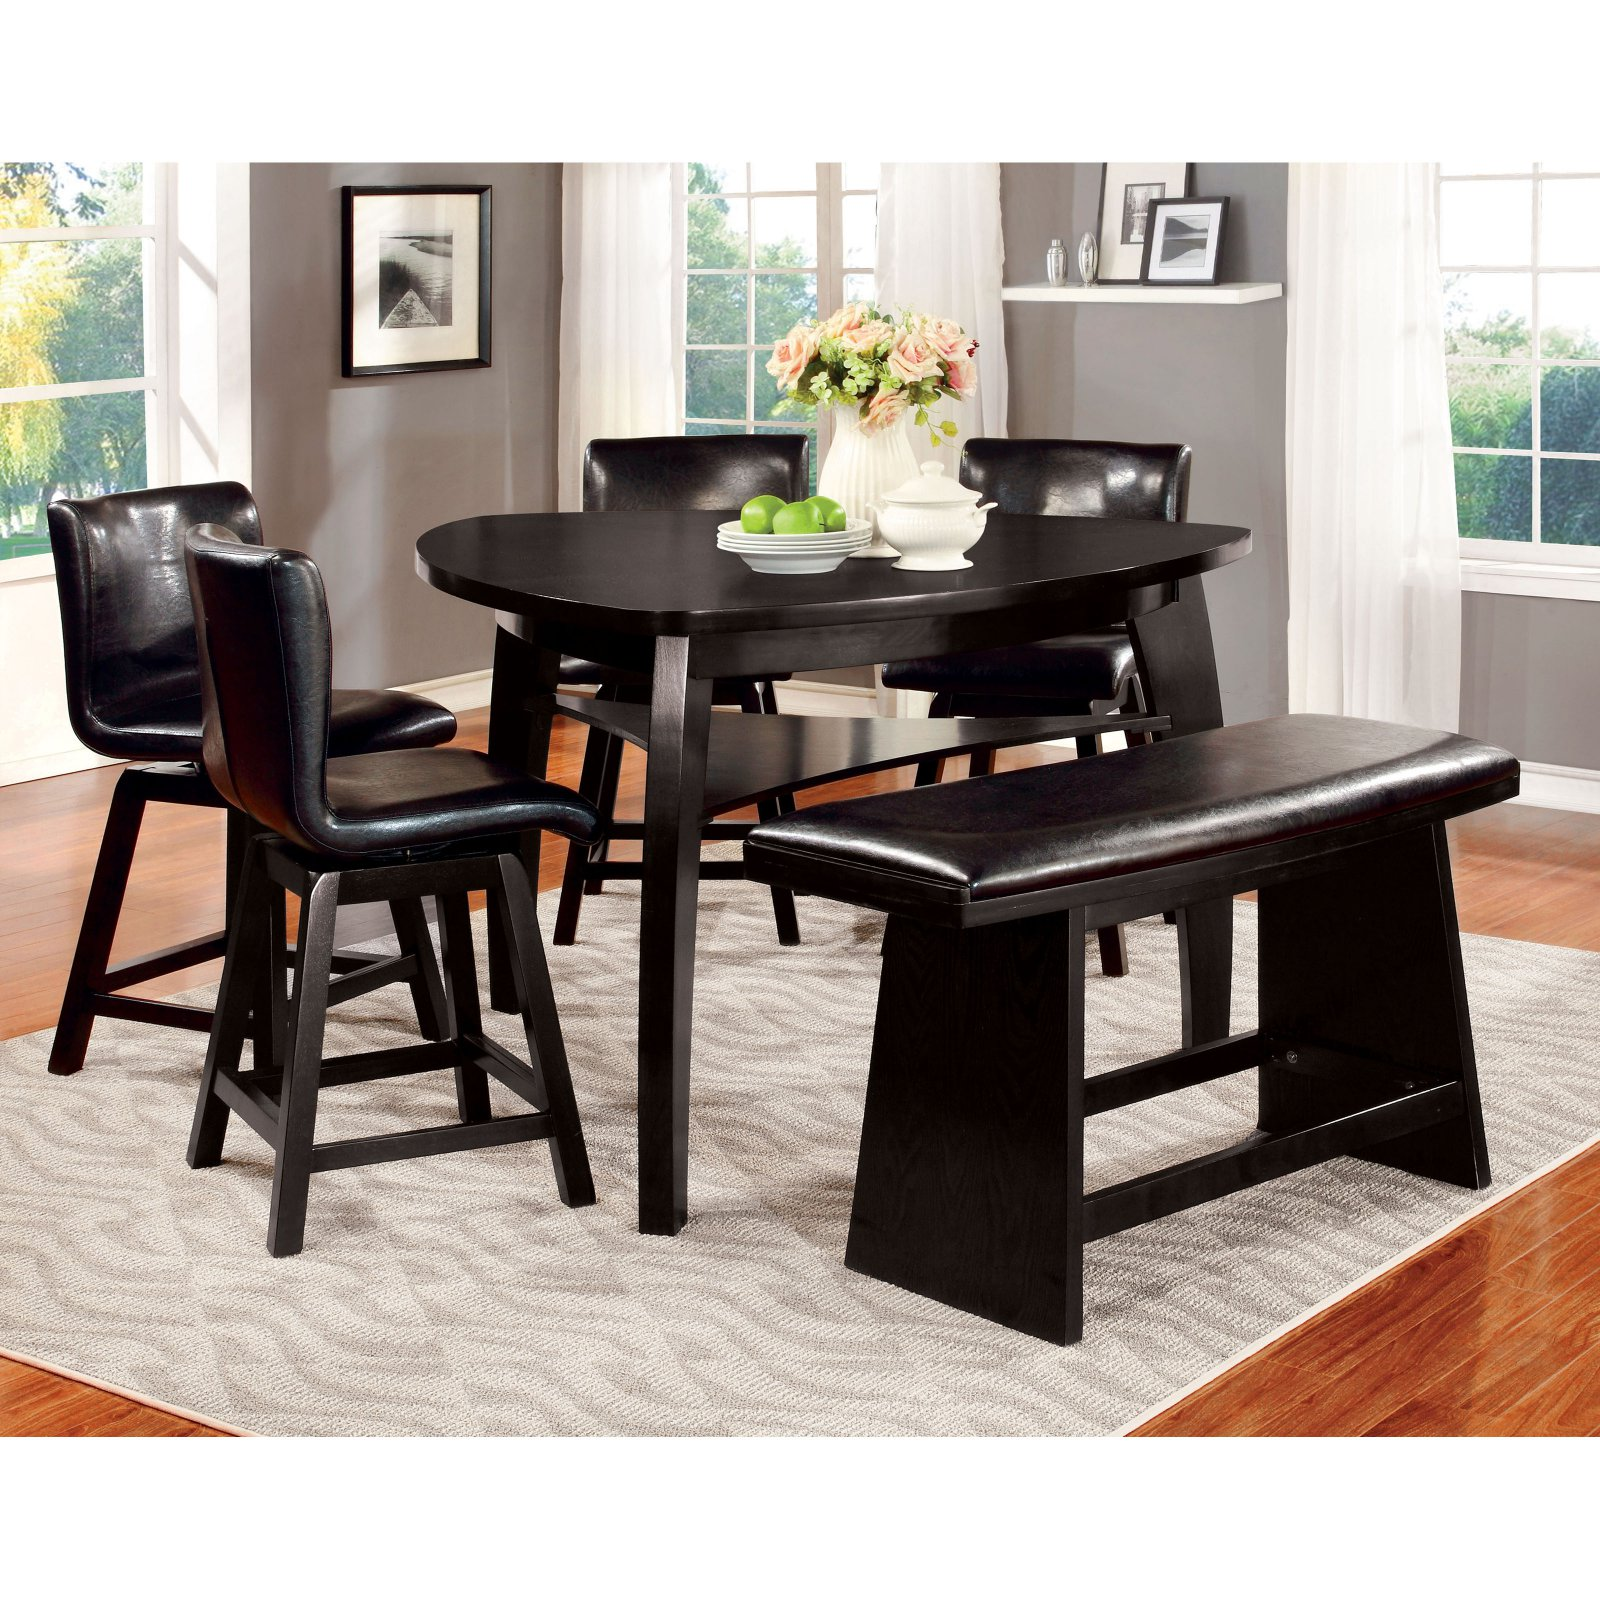 Picture of: Furniture Of America Rathbun Modern 6 Piece Counter Height Dining Table Set With Swivel Chairs Walmart Com Walmart Com